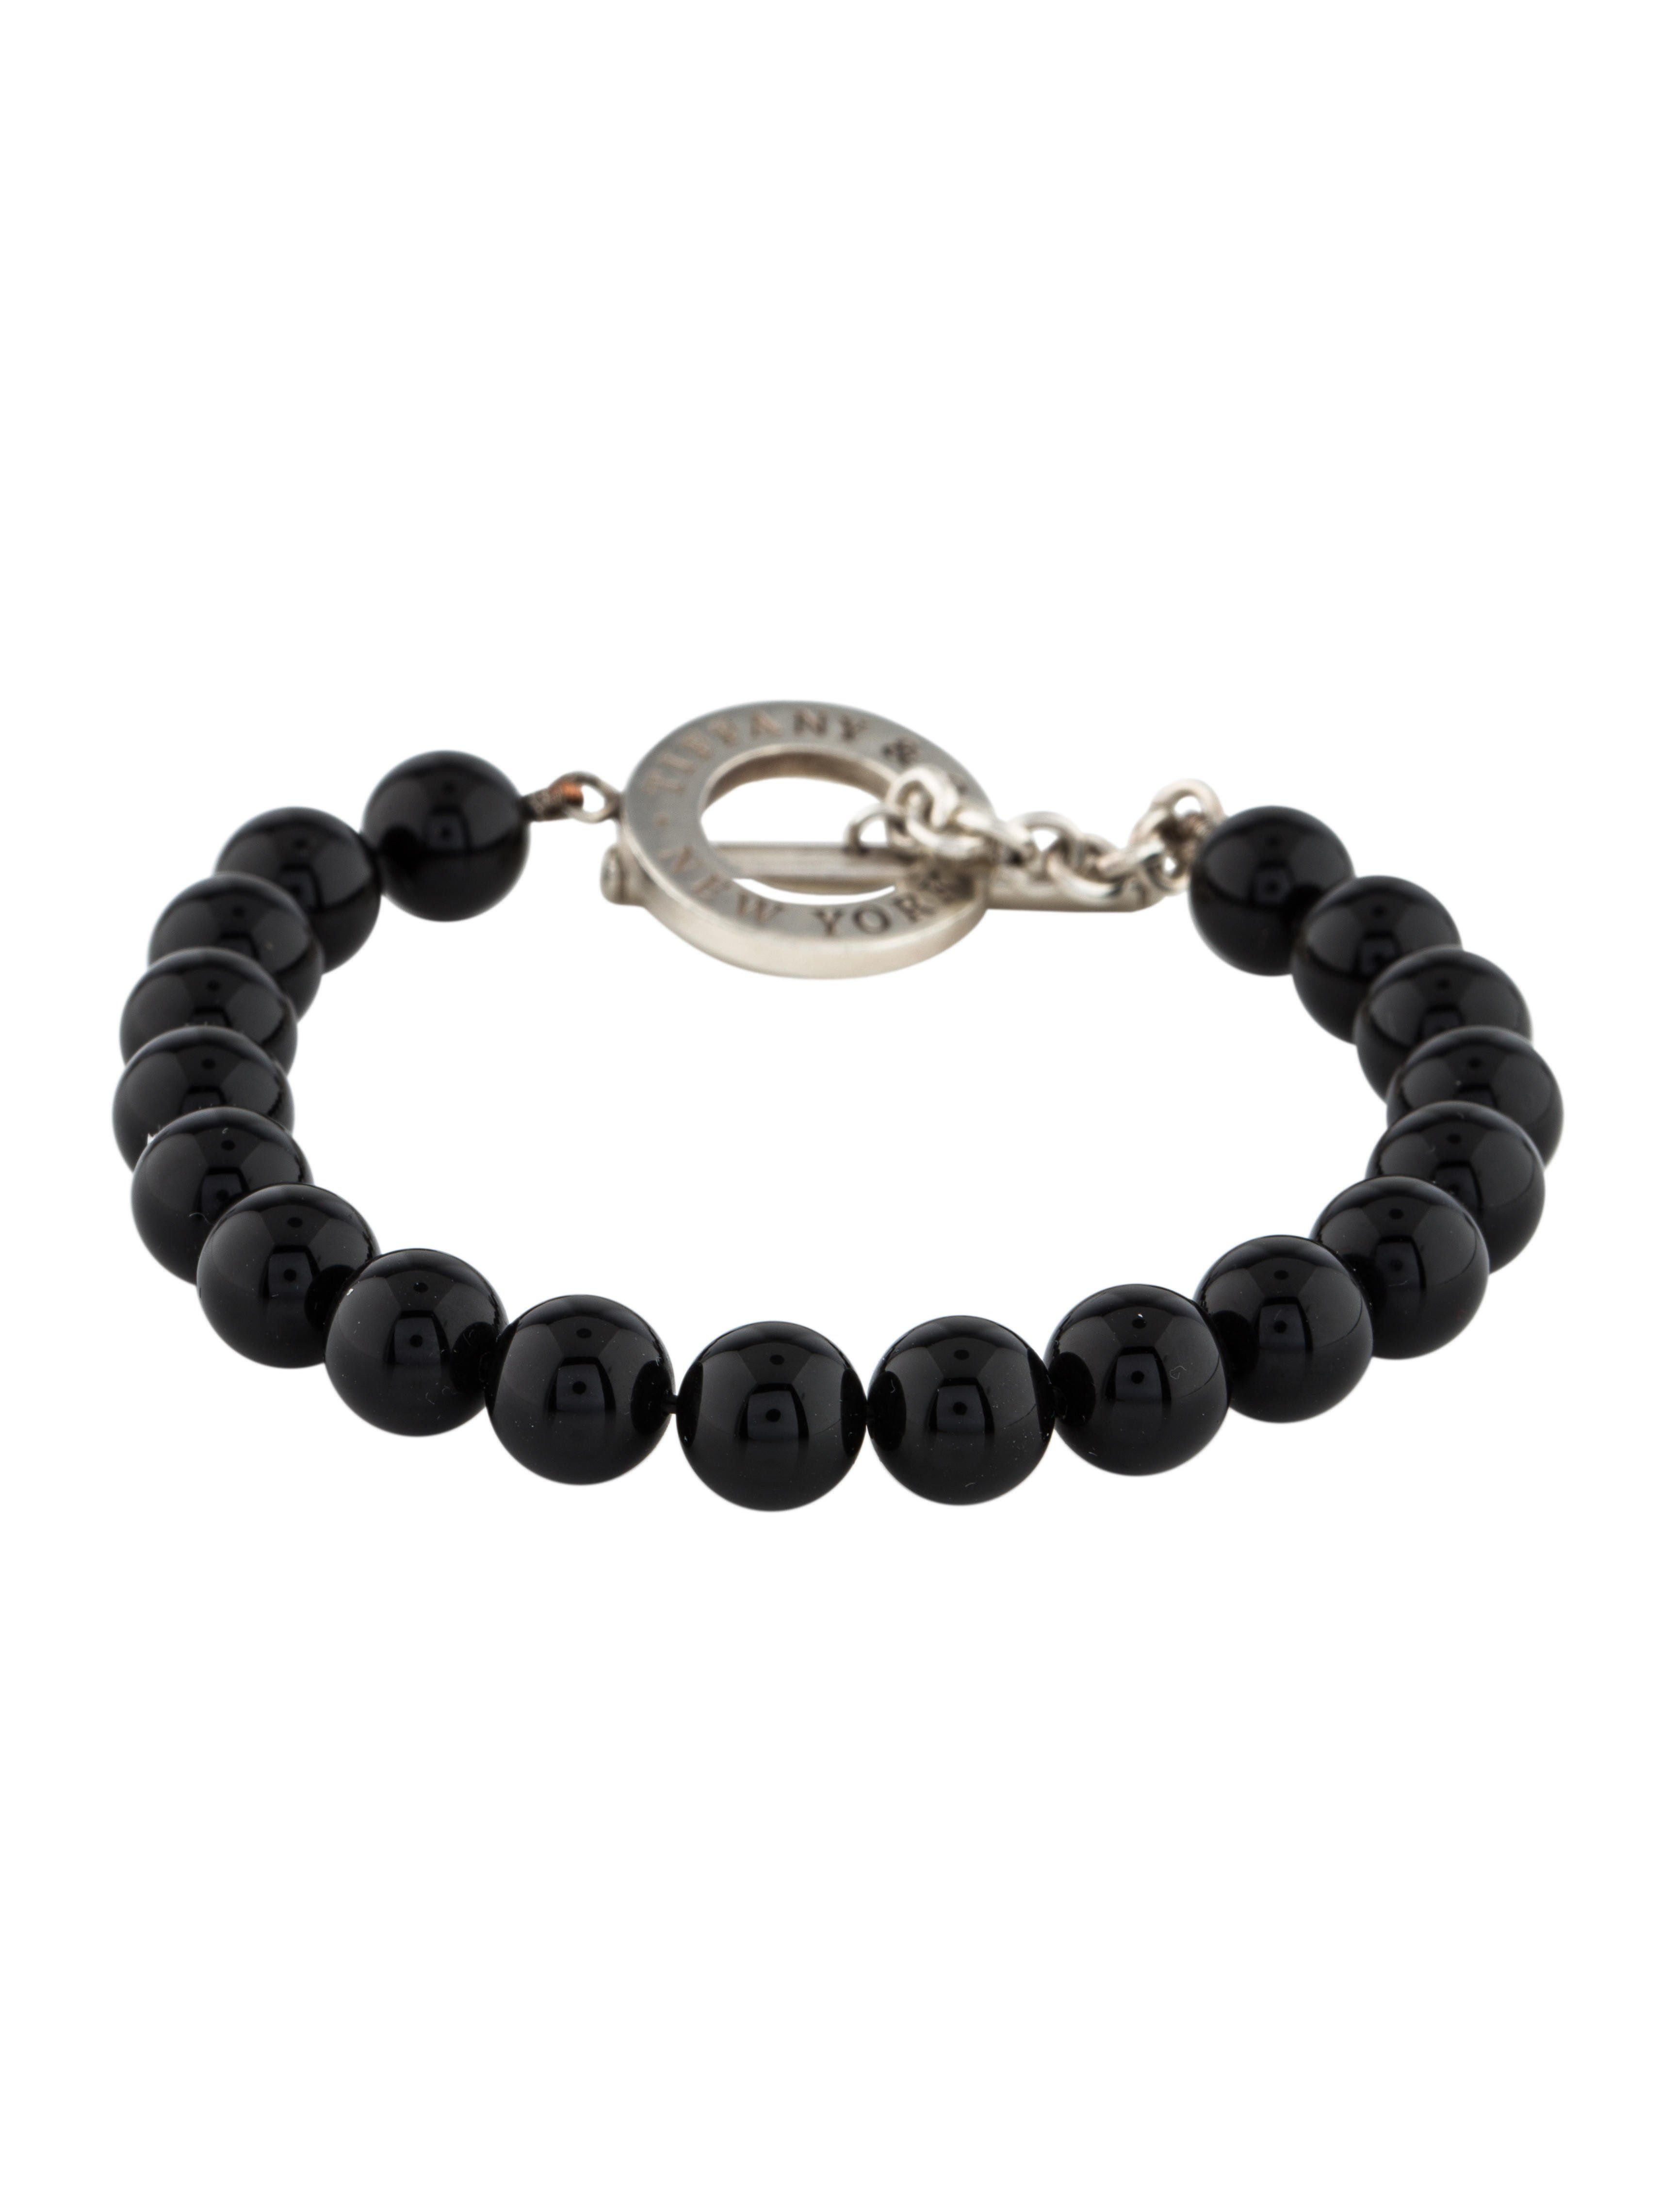 762c8299b Black onyx bead Tiffany & Co. bracelet with sterling silver toggle closure.  Includes jewelry pouch.